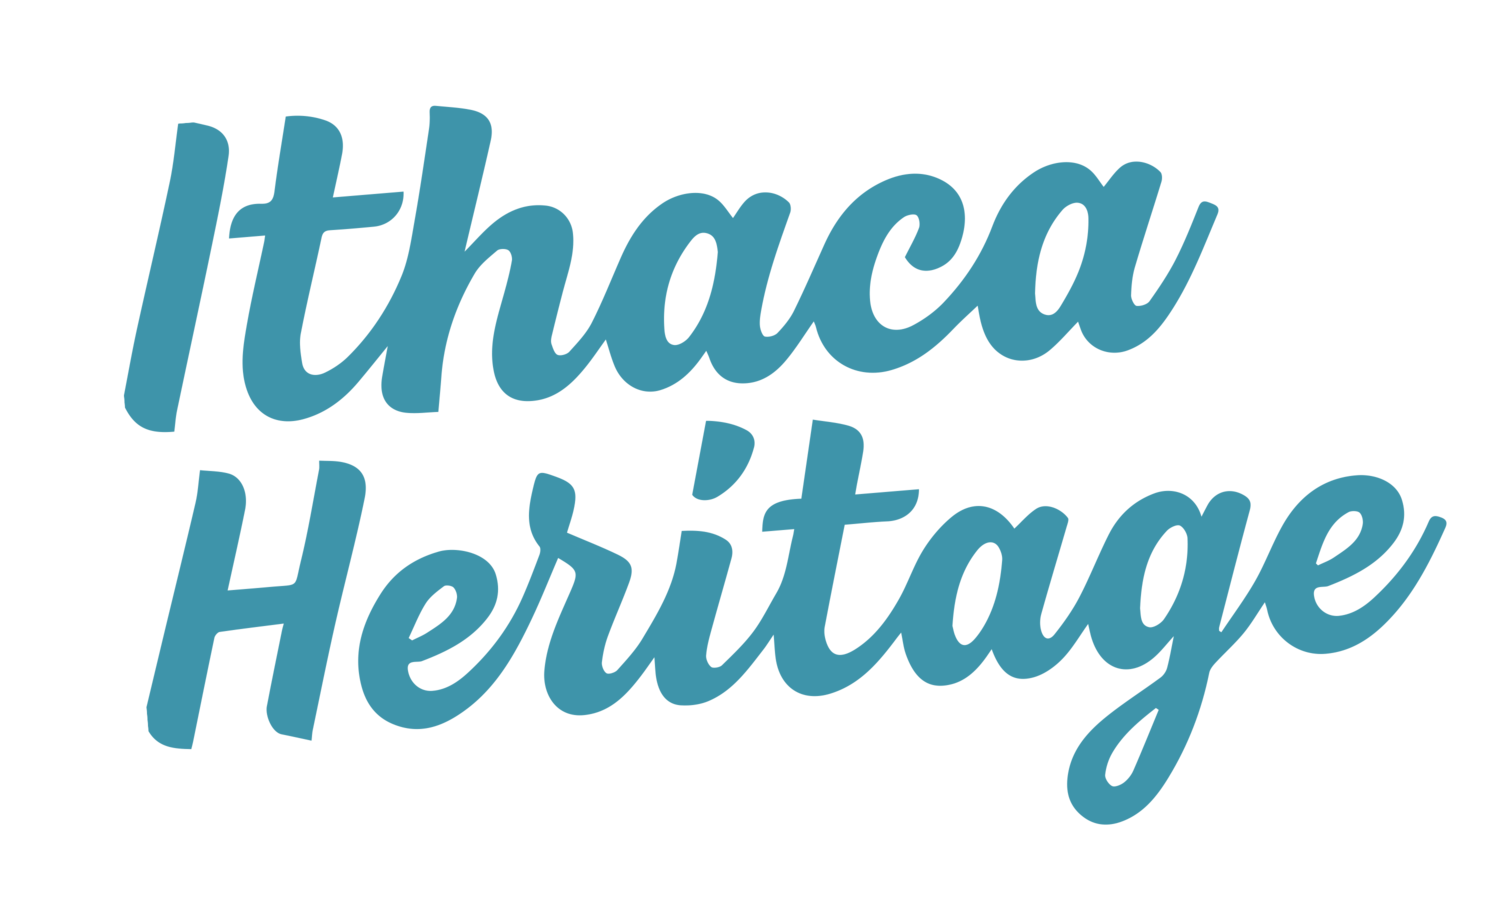 Day Two Cultural Heritage Itinerary — Ithaca Heritage